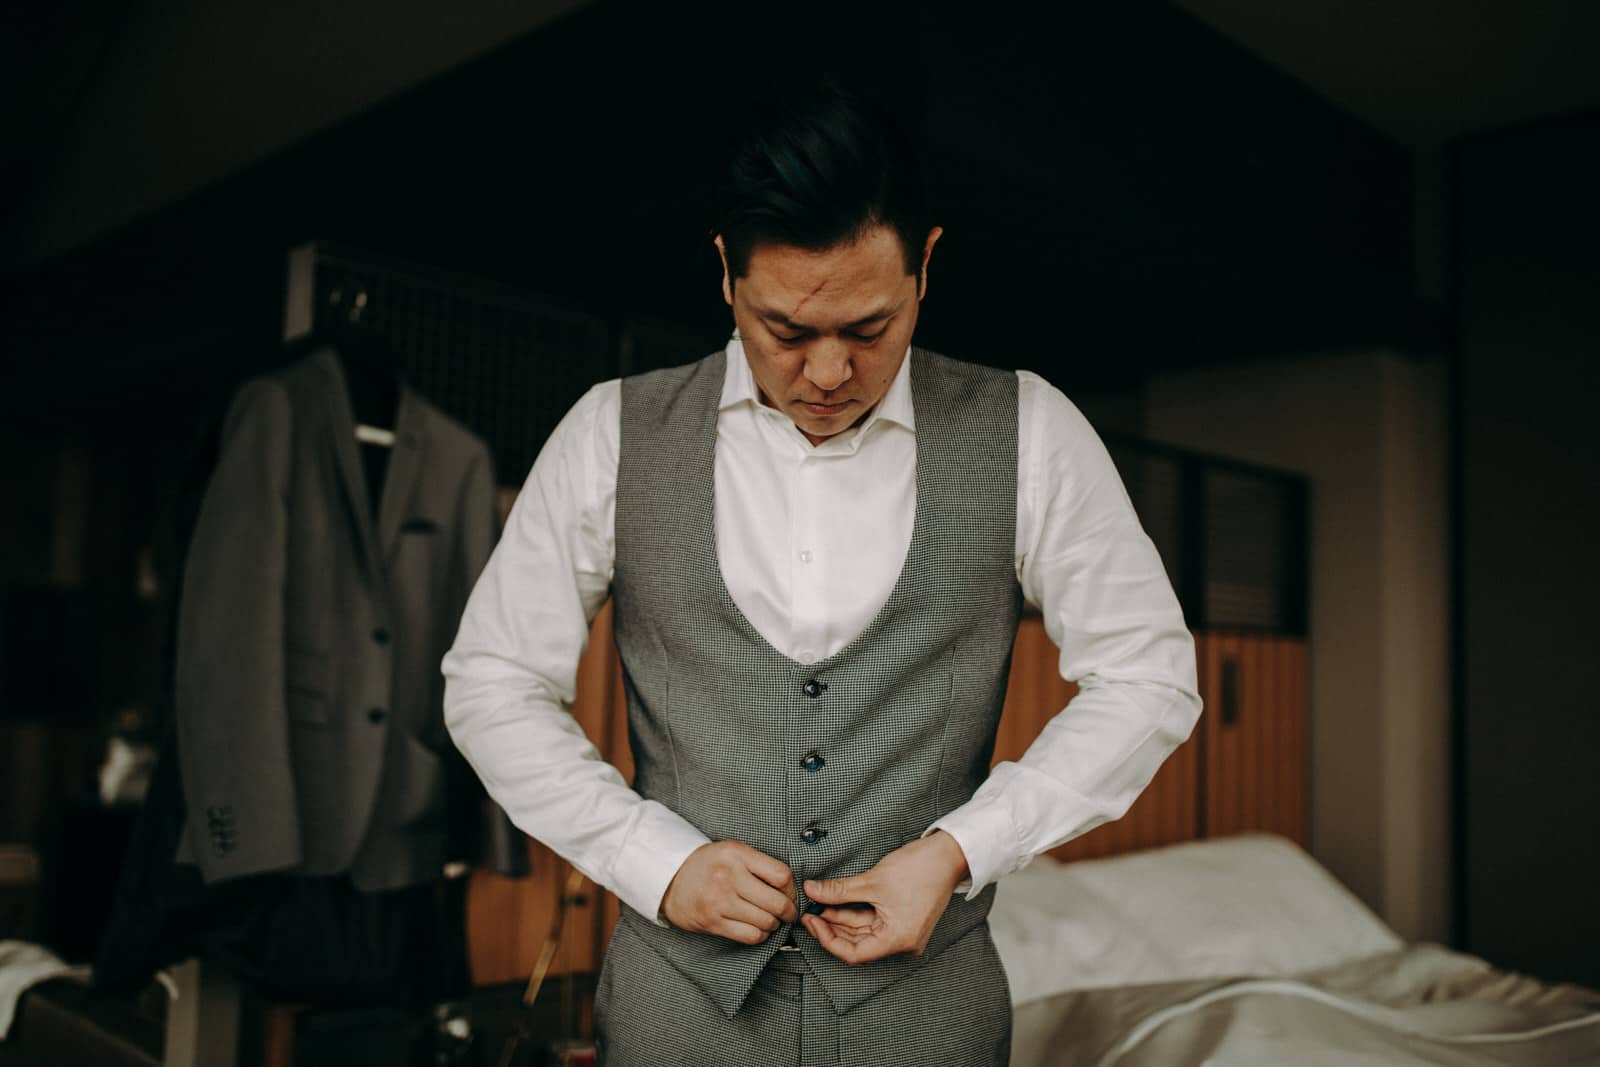 The groom is getting ready.